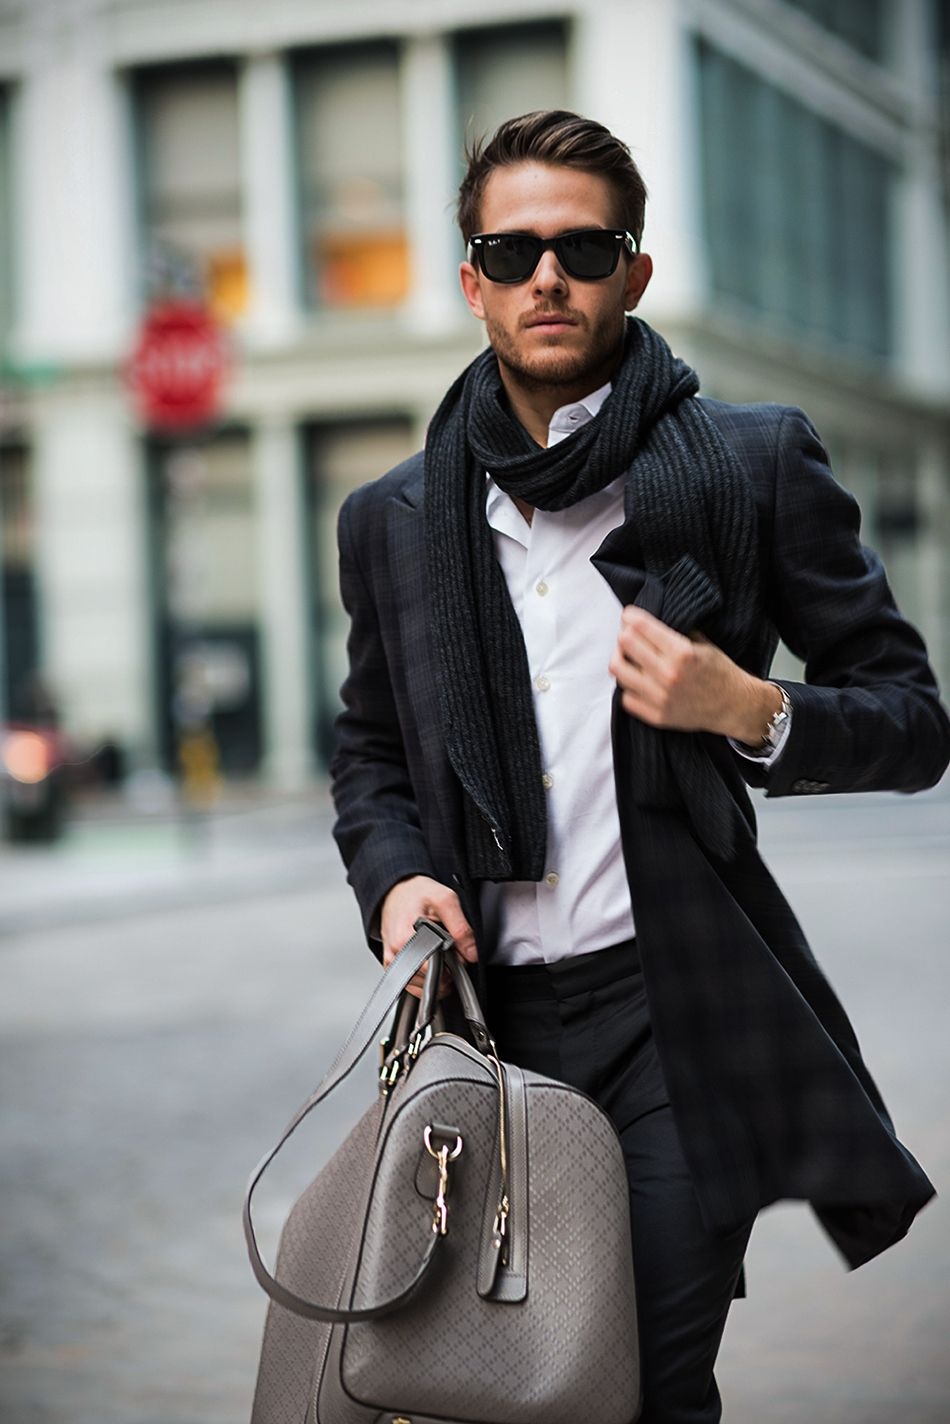 Adam Gallagher in Holiday Style - Topman trousers, Ted Baker coat, Uniqlo  shirt,